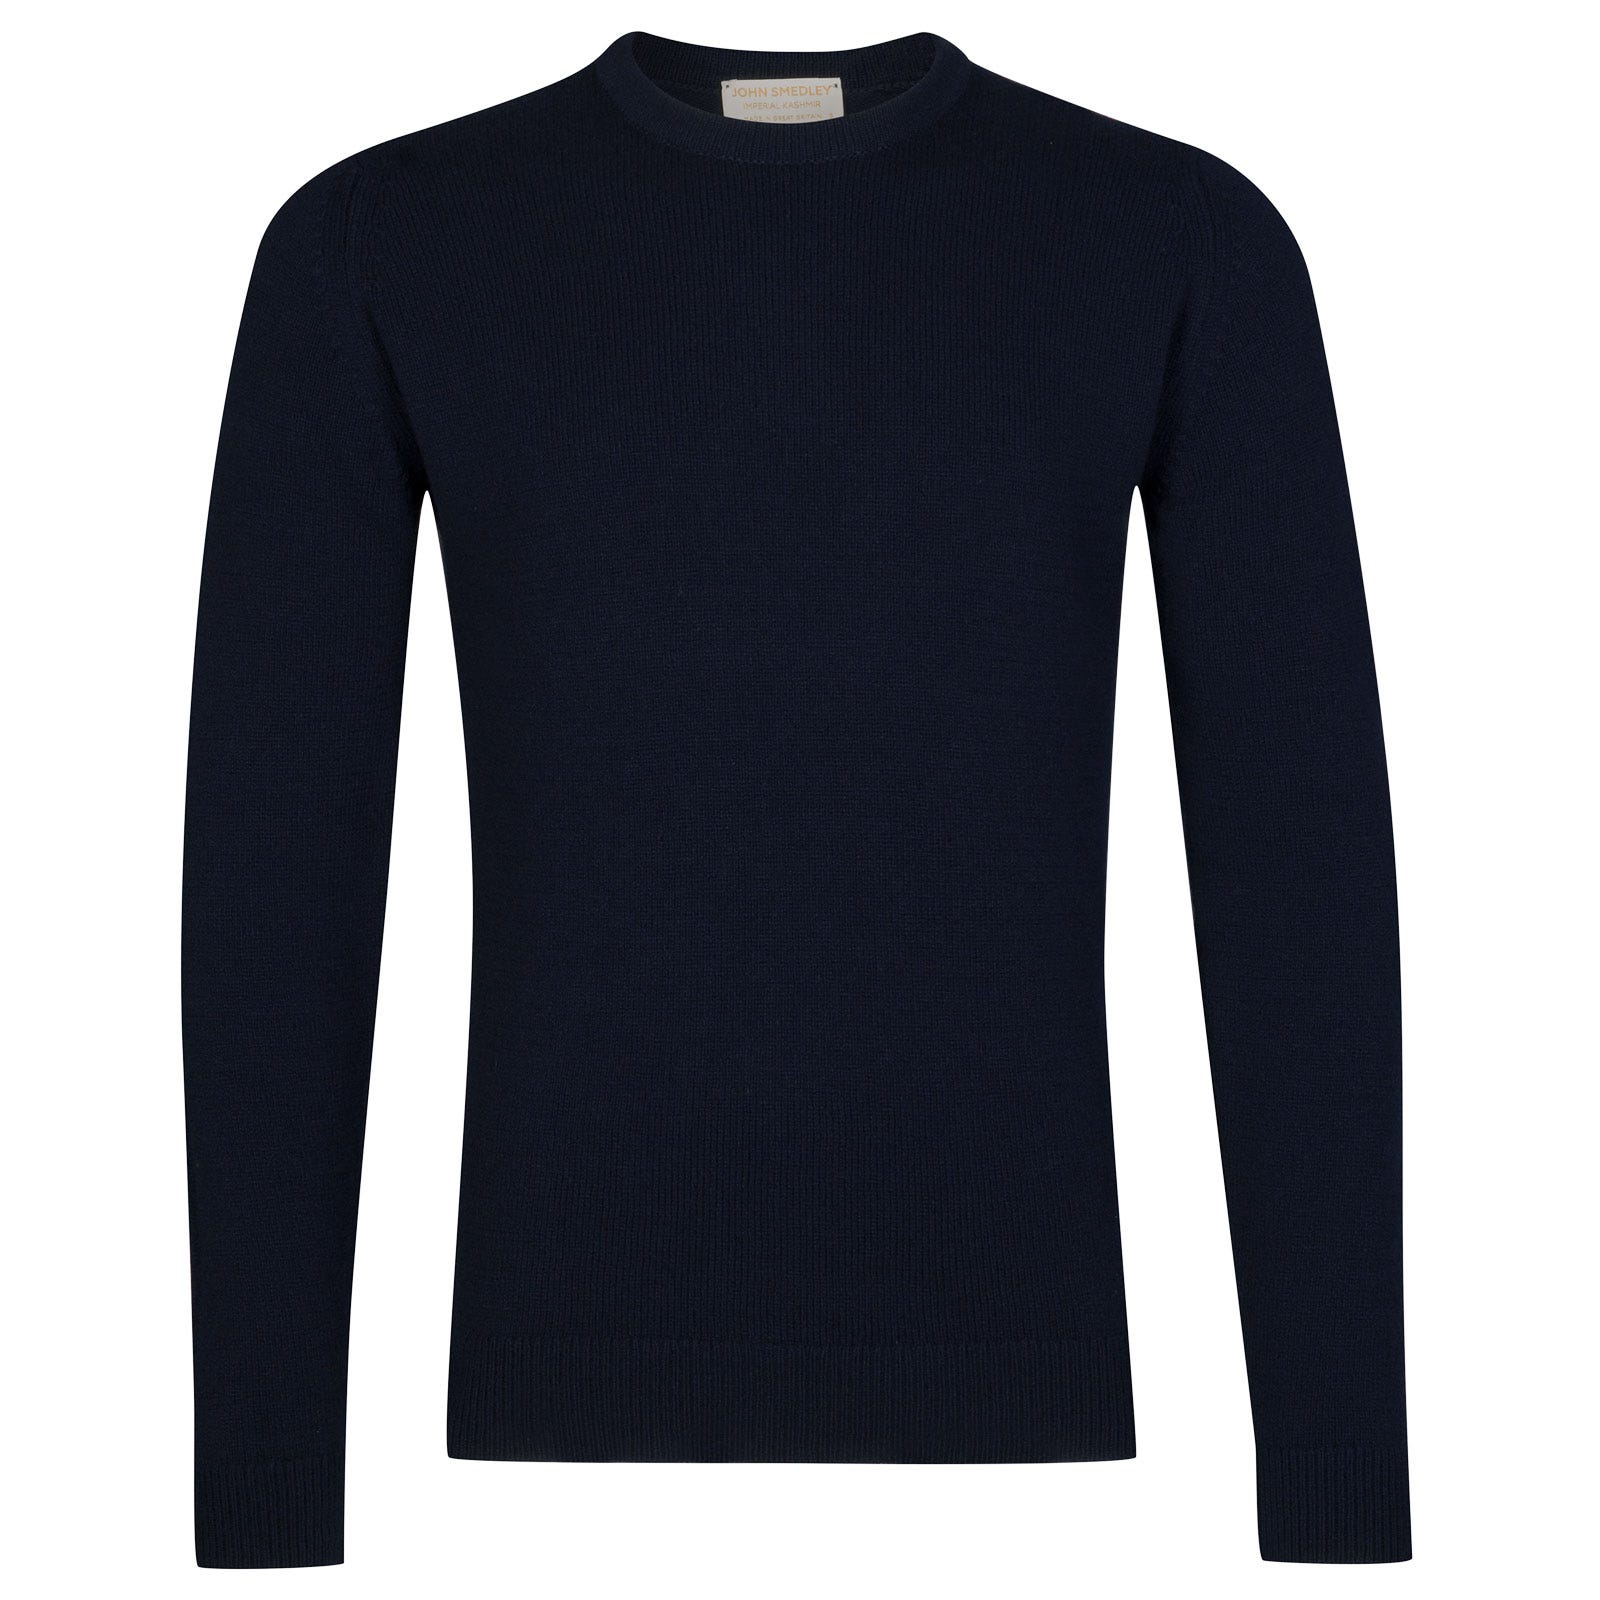 John Smedley Crowford Wool and Cashmere Pullover in Midnight-L